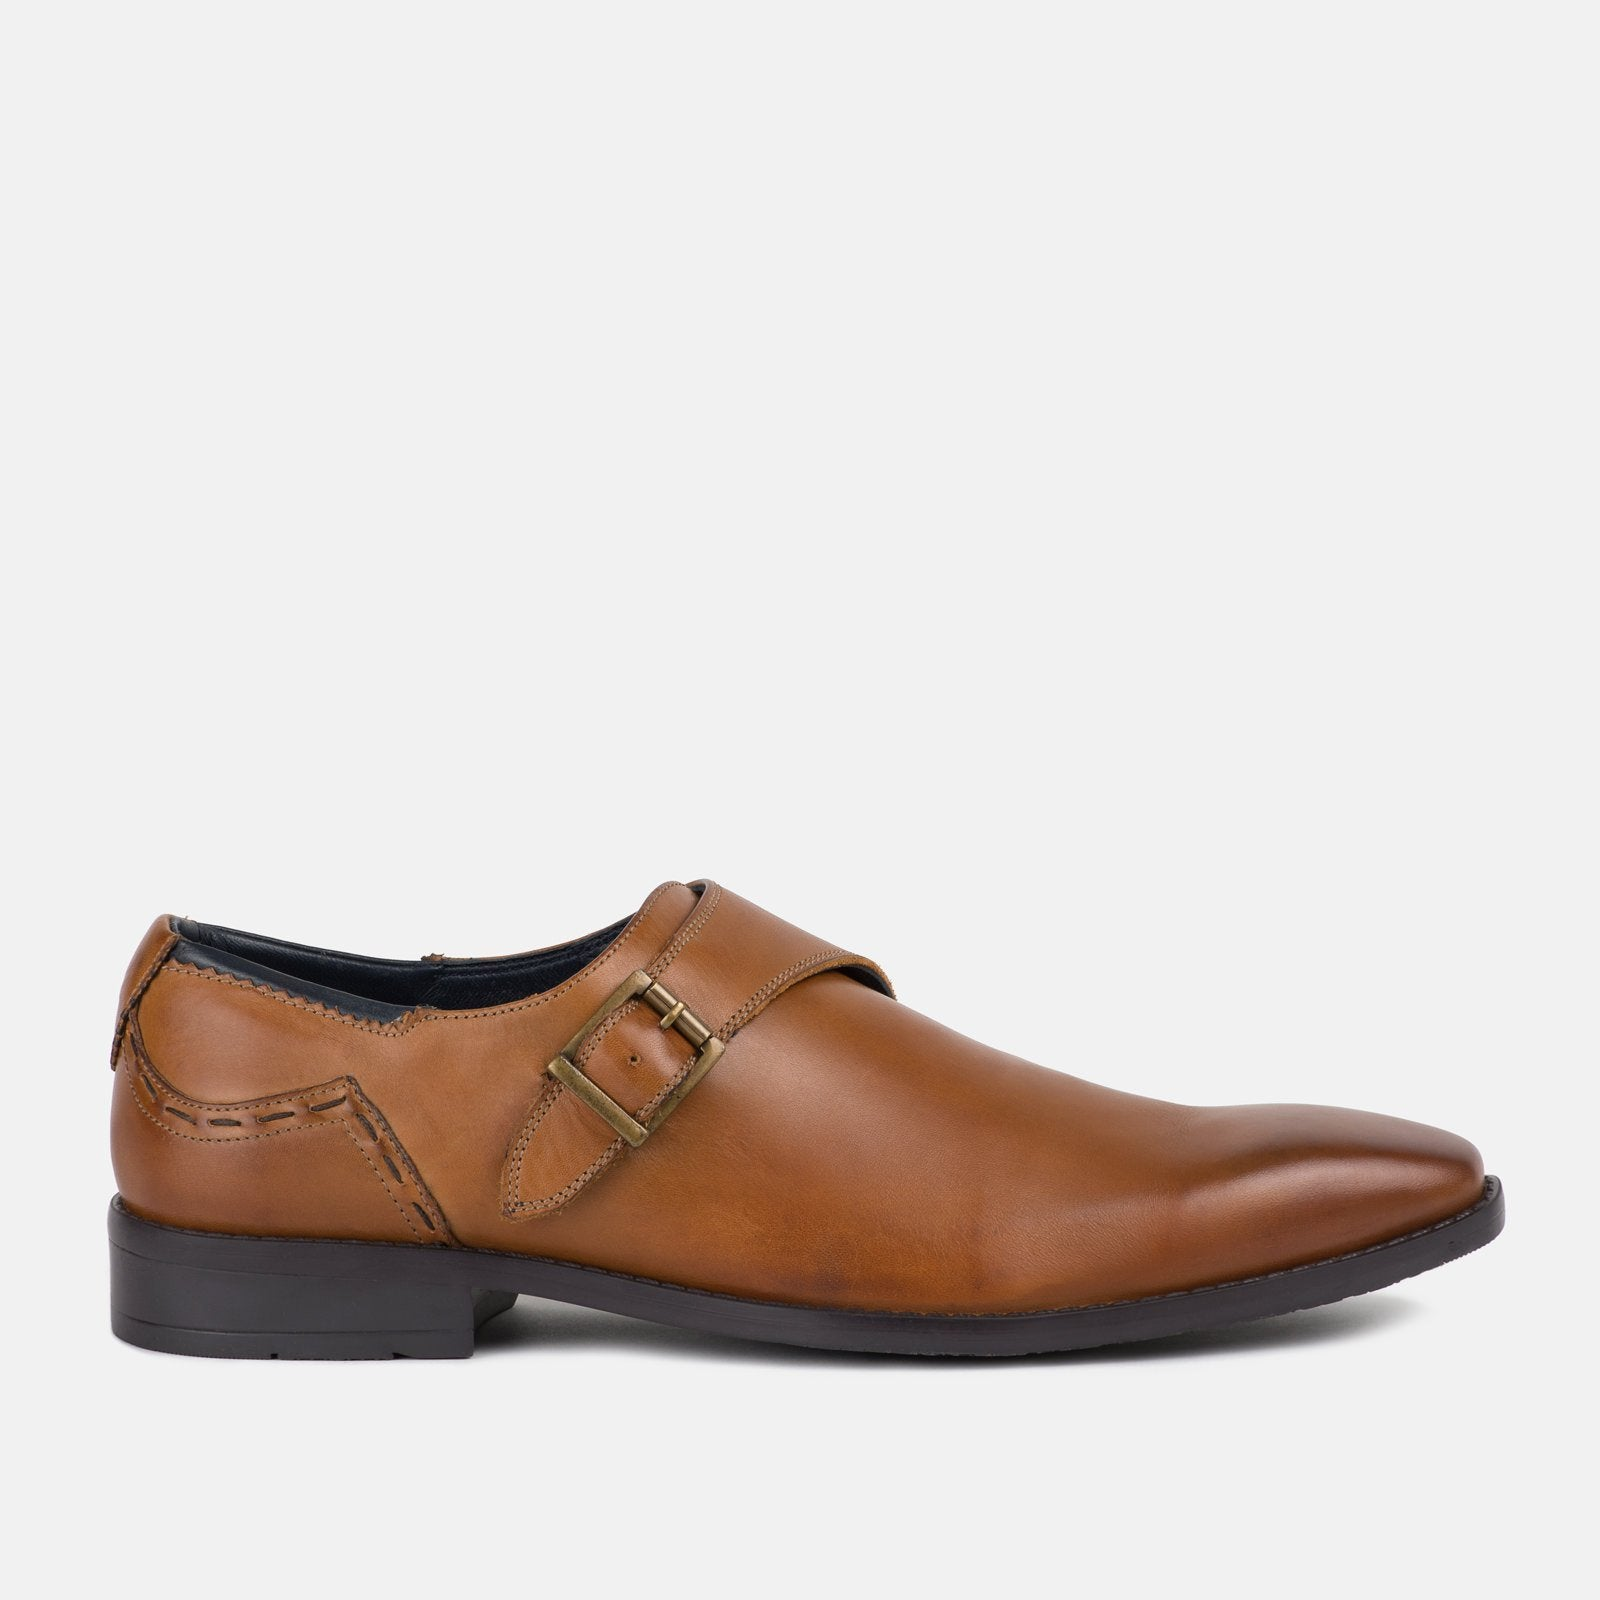 Goodwin Smith Footwear UK 6 / EURO 39 / US 7 / Tan / Leather RISHWORTH TAN